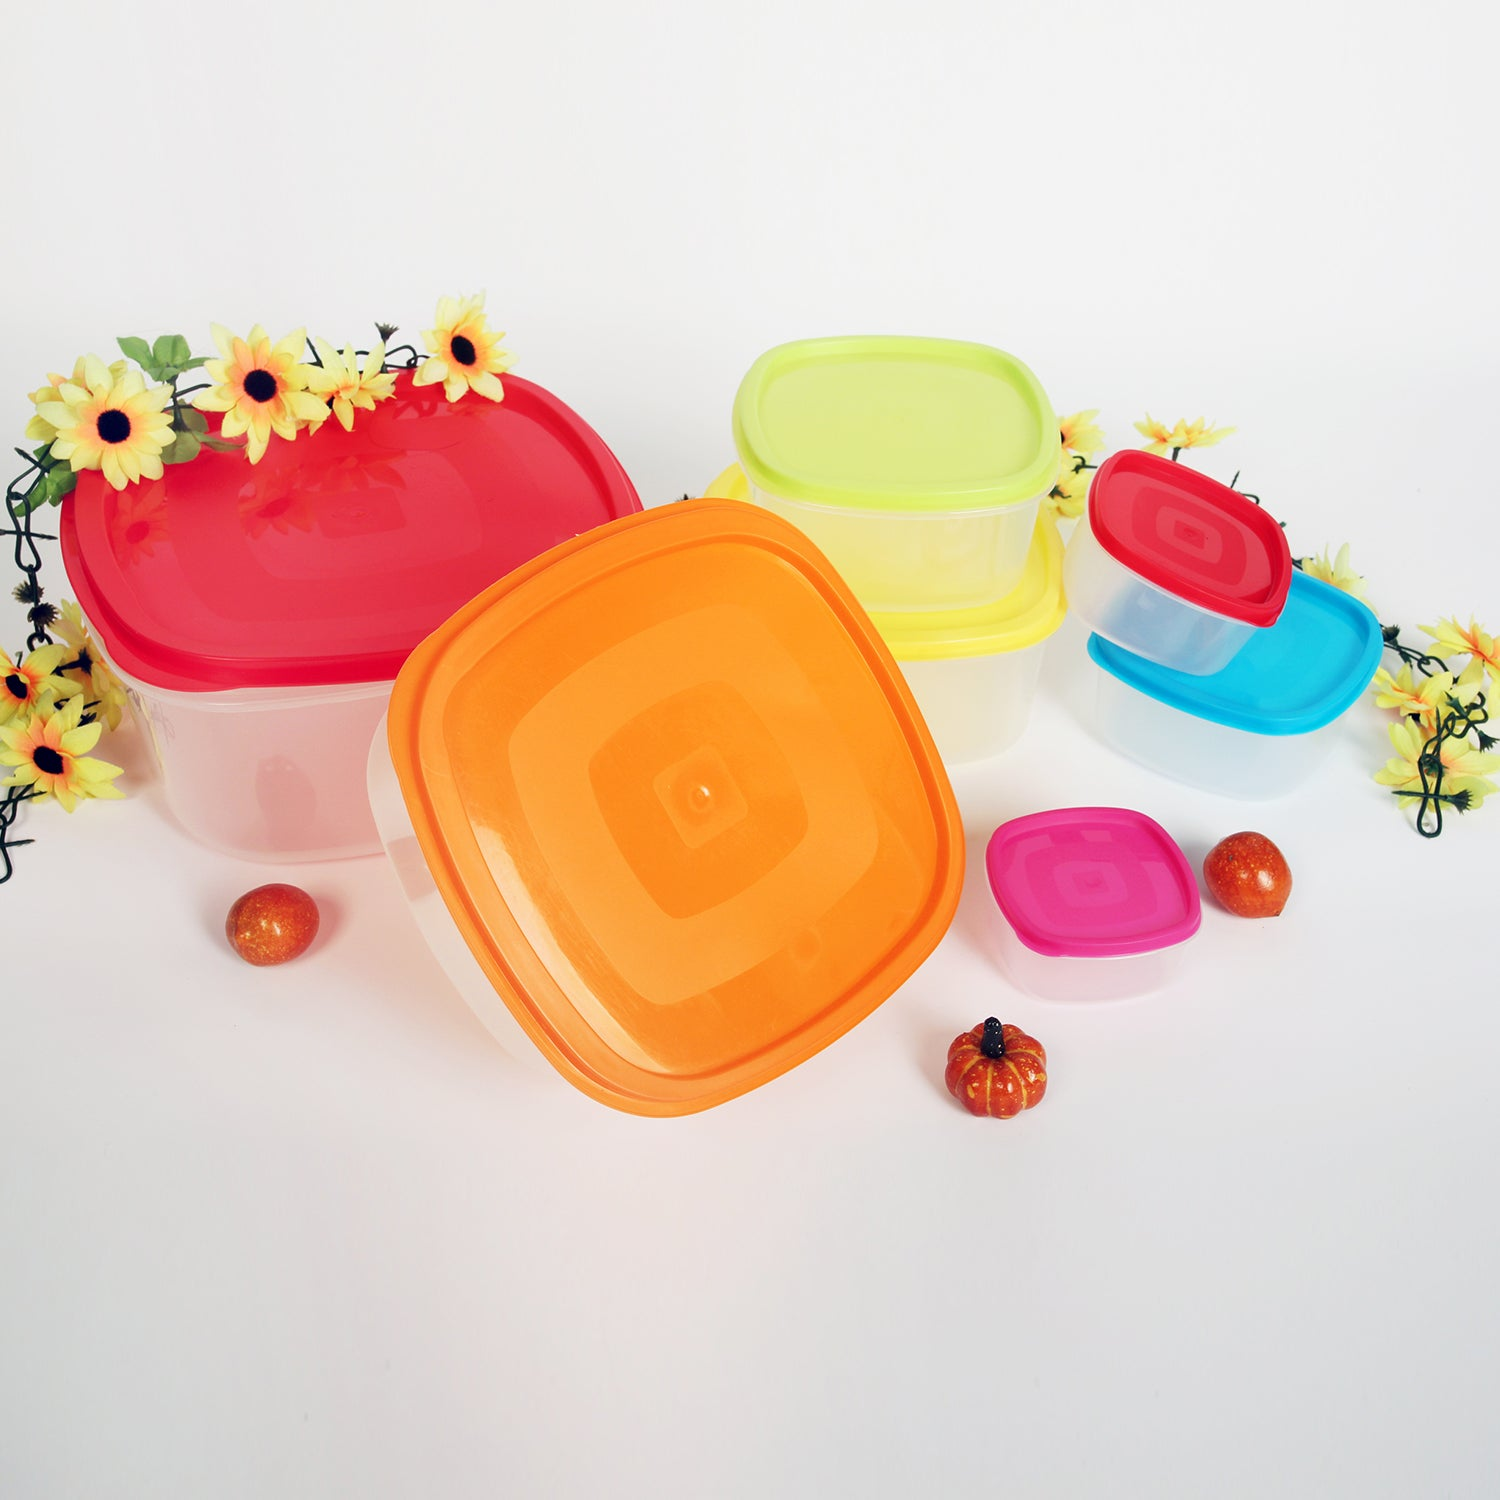 14-Piece Multi-Color BPA Free Food Storage Container Set - Square